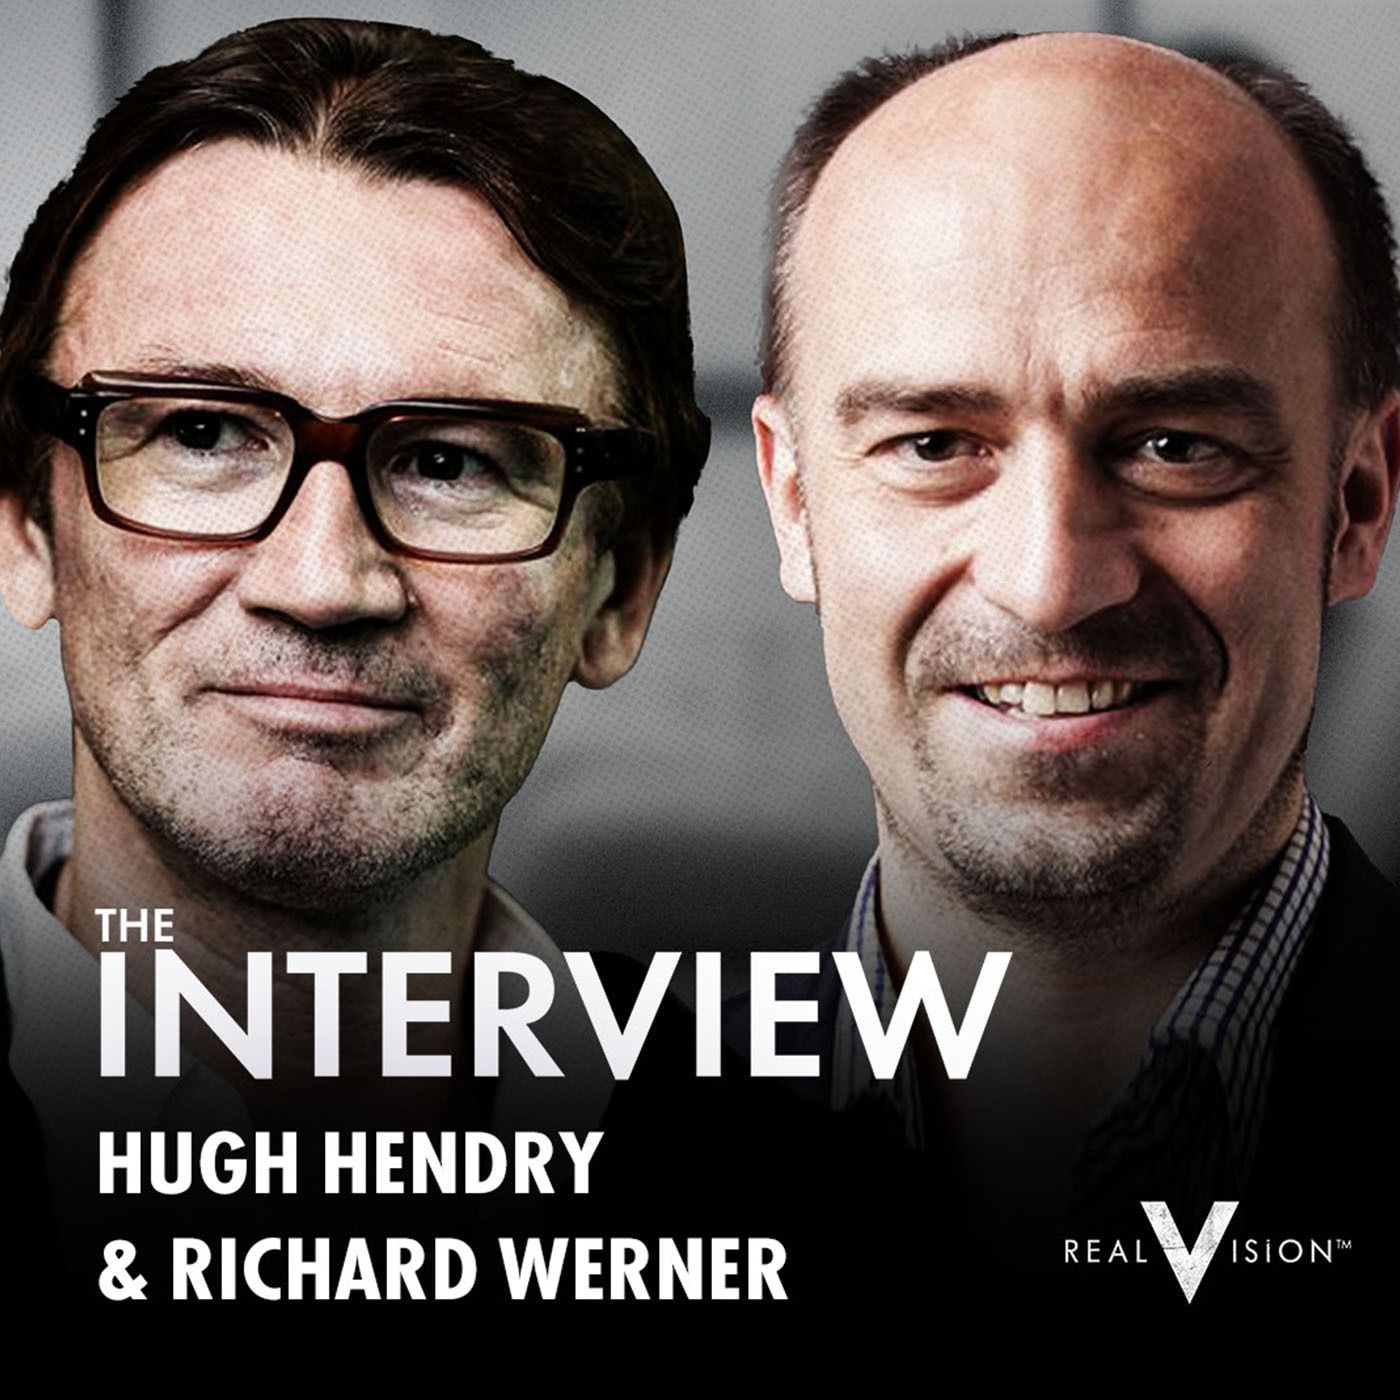 The Interview - Professor Richard Werner joins Hugh Hendry - More Power To The Princes